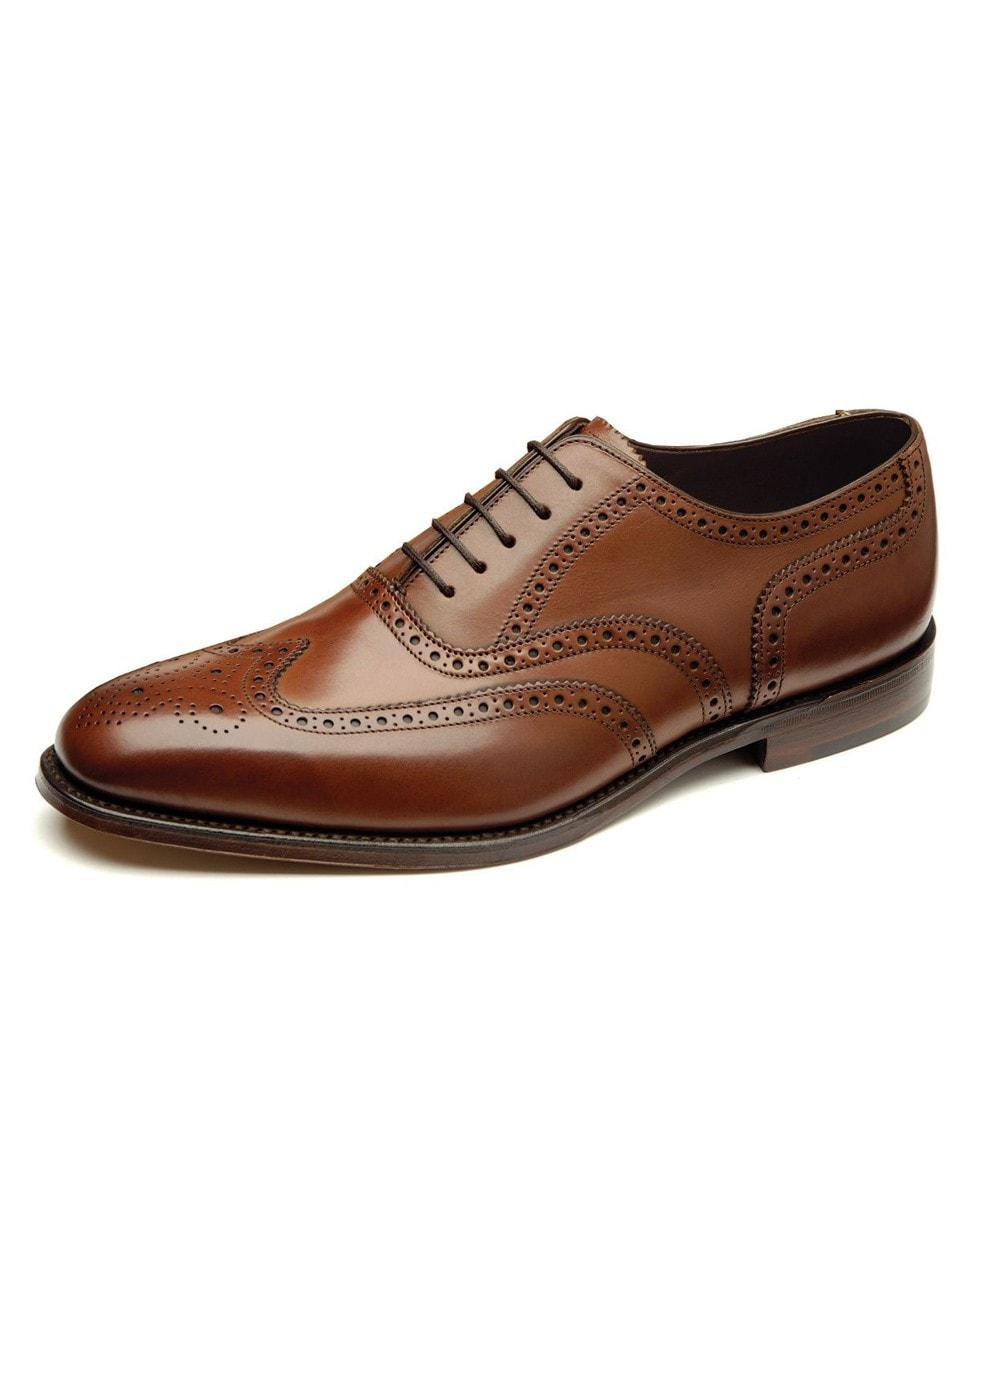 99fdd2be99e Loake Buckingham Shoes - Mens from A Hume UK